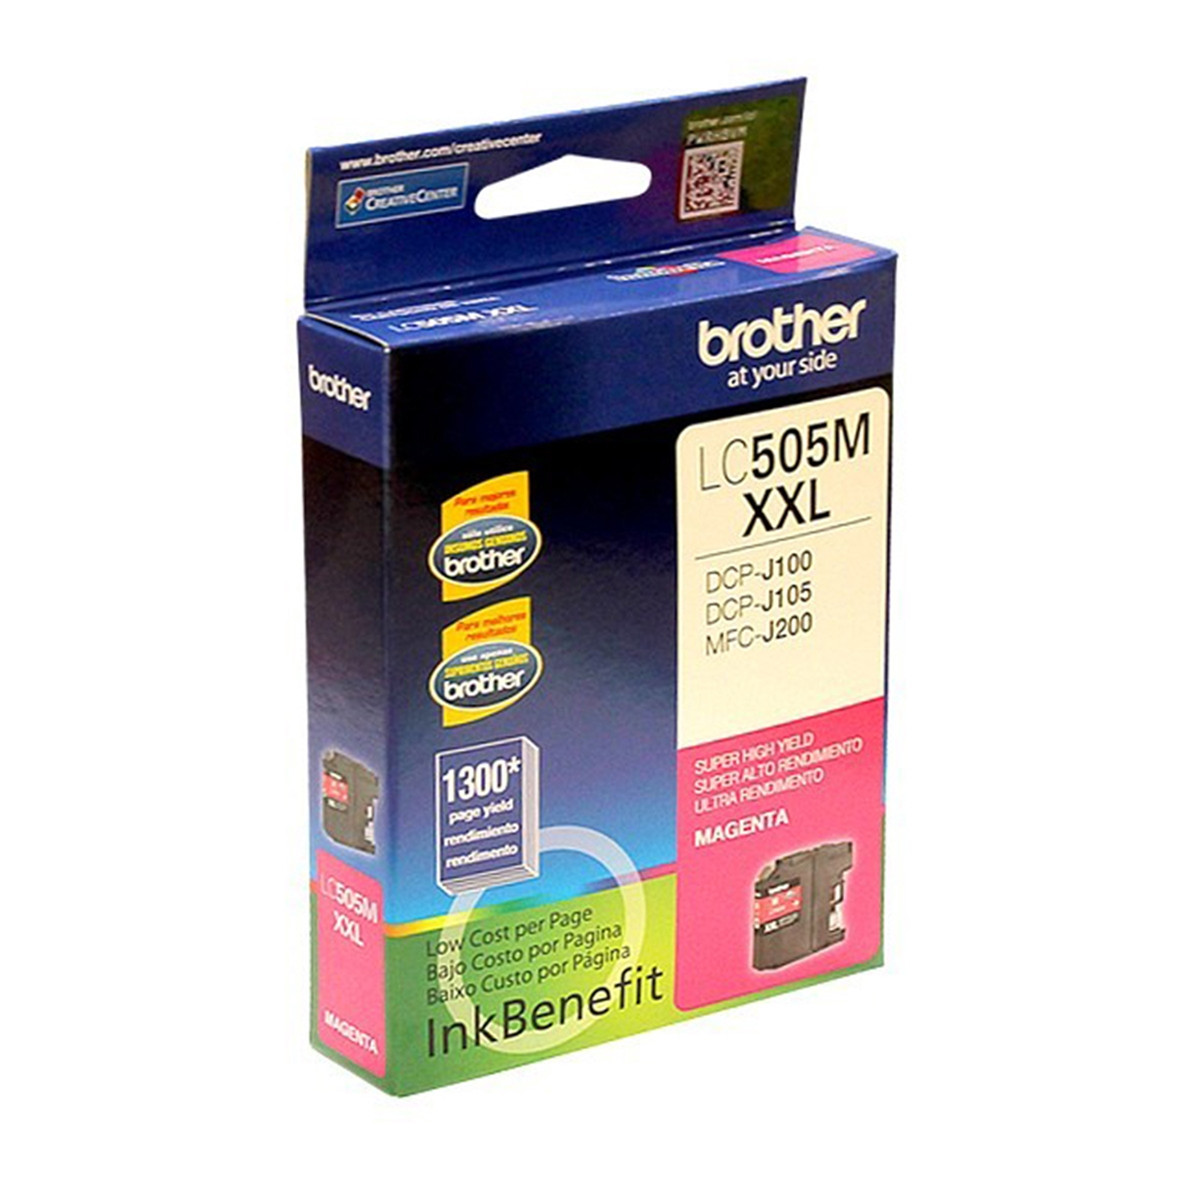 Cartucho de Tinta Brother LC-505M LC505 Magenta | DCP-J105 DCP-J100 MFC-J200 | Original 12ml